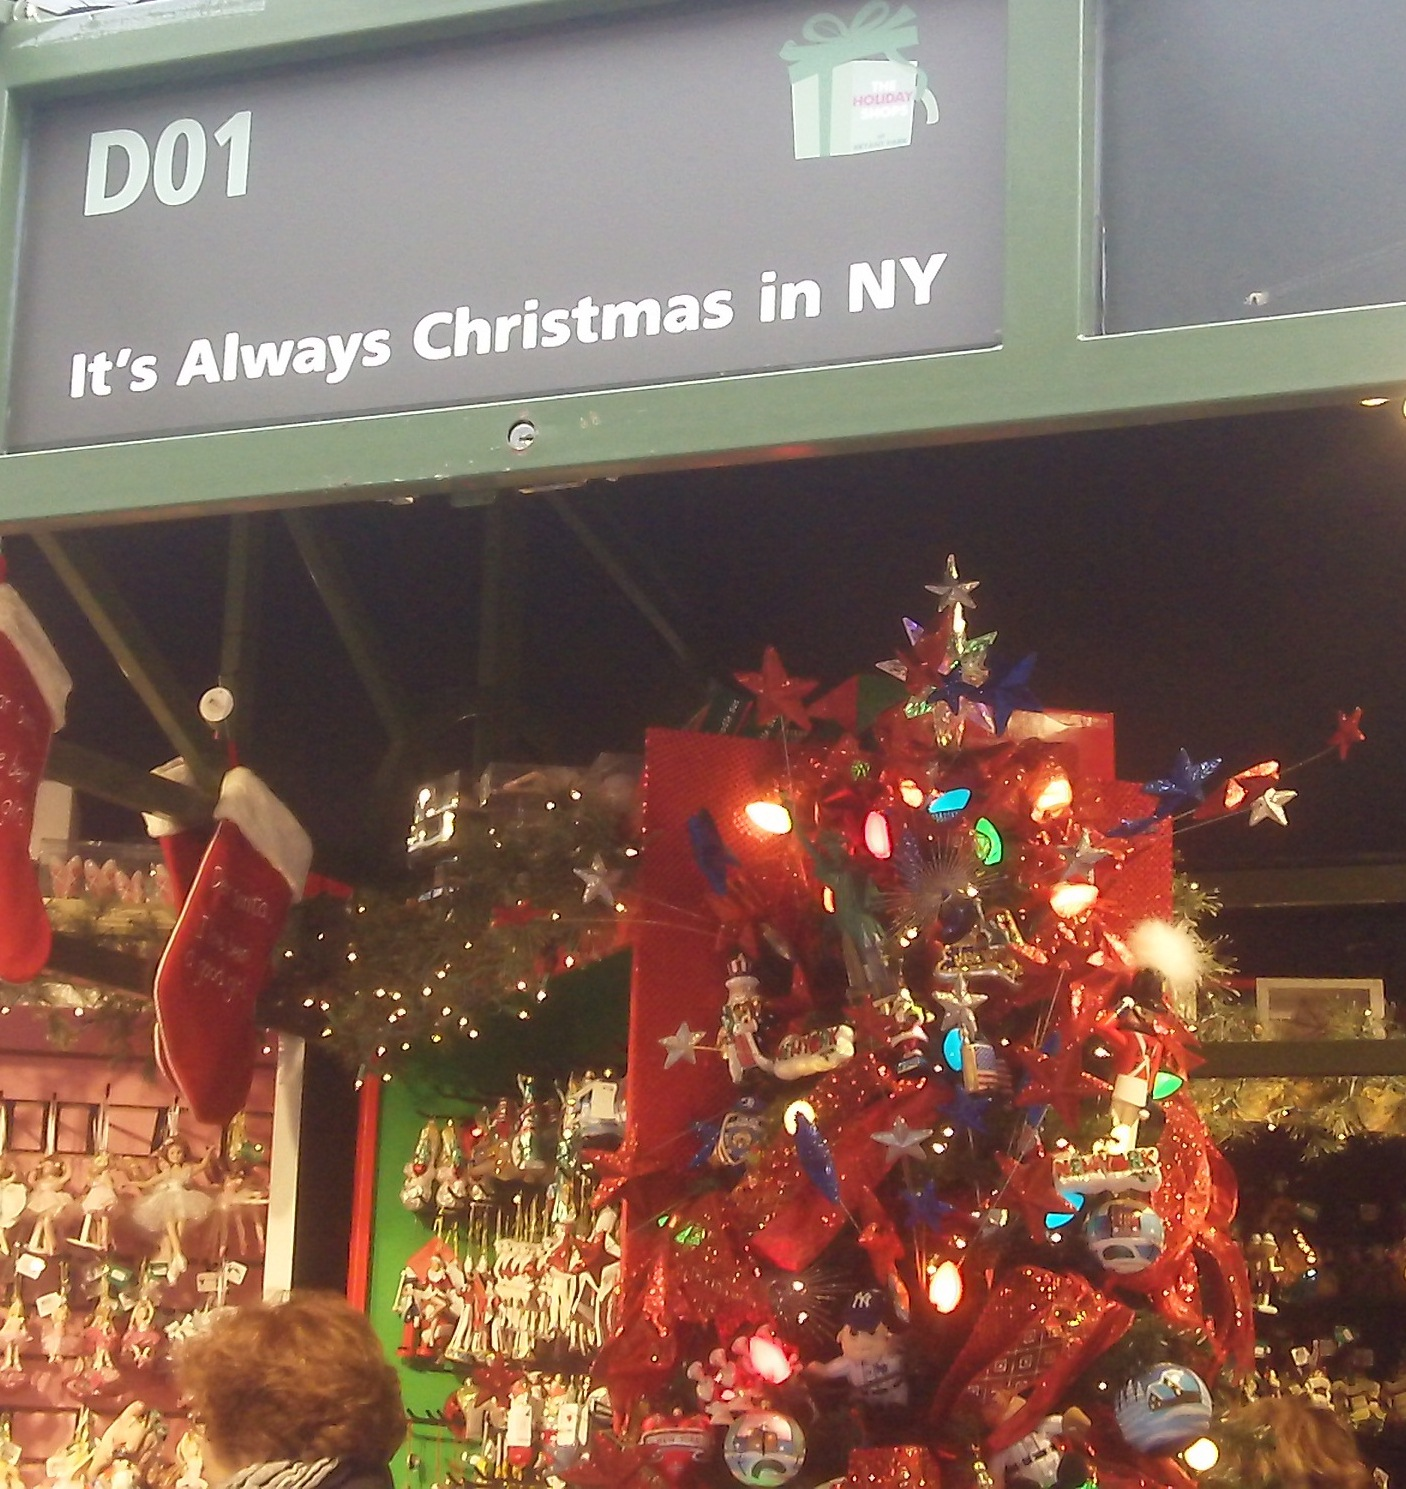 Davis day trips it 39 s always christmas in new york city for Christmas trips to new york